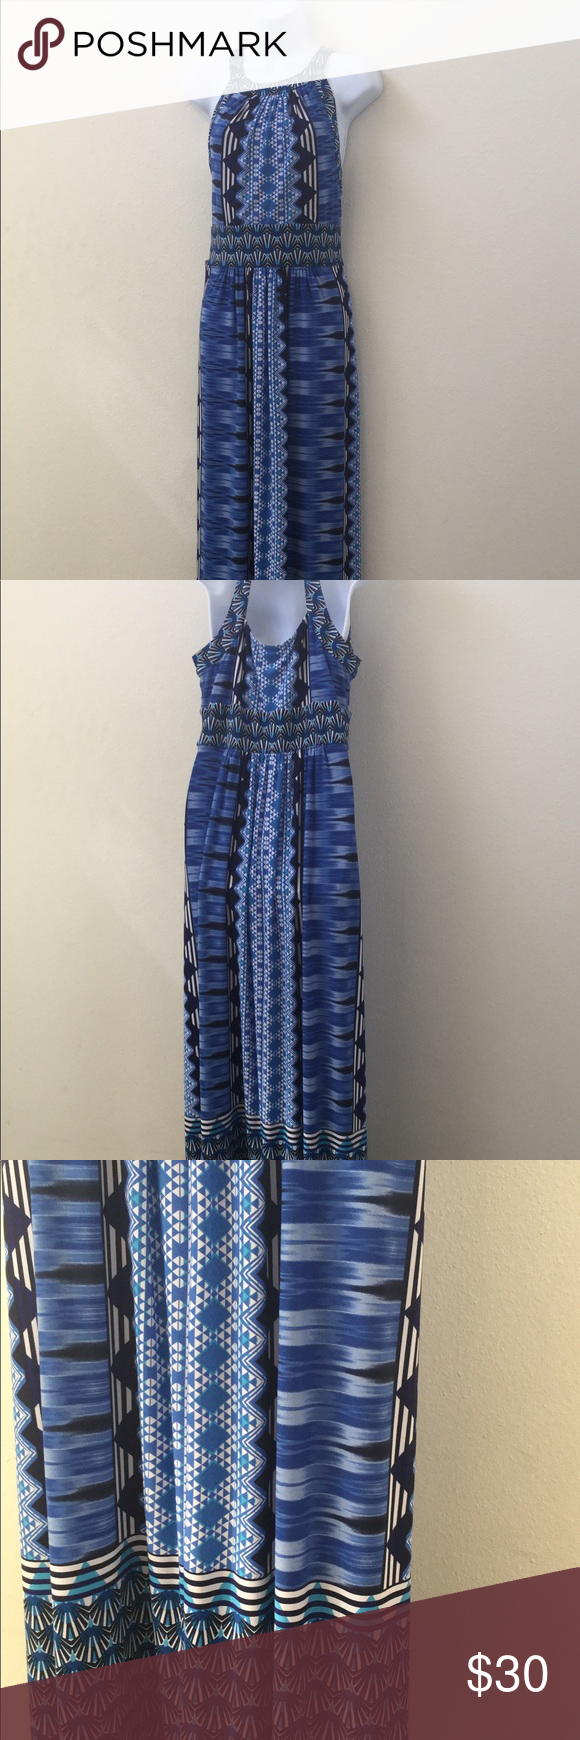 Womenus size blue maxi dress